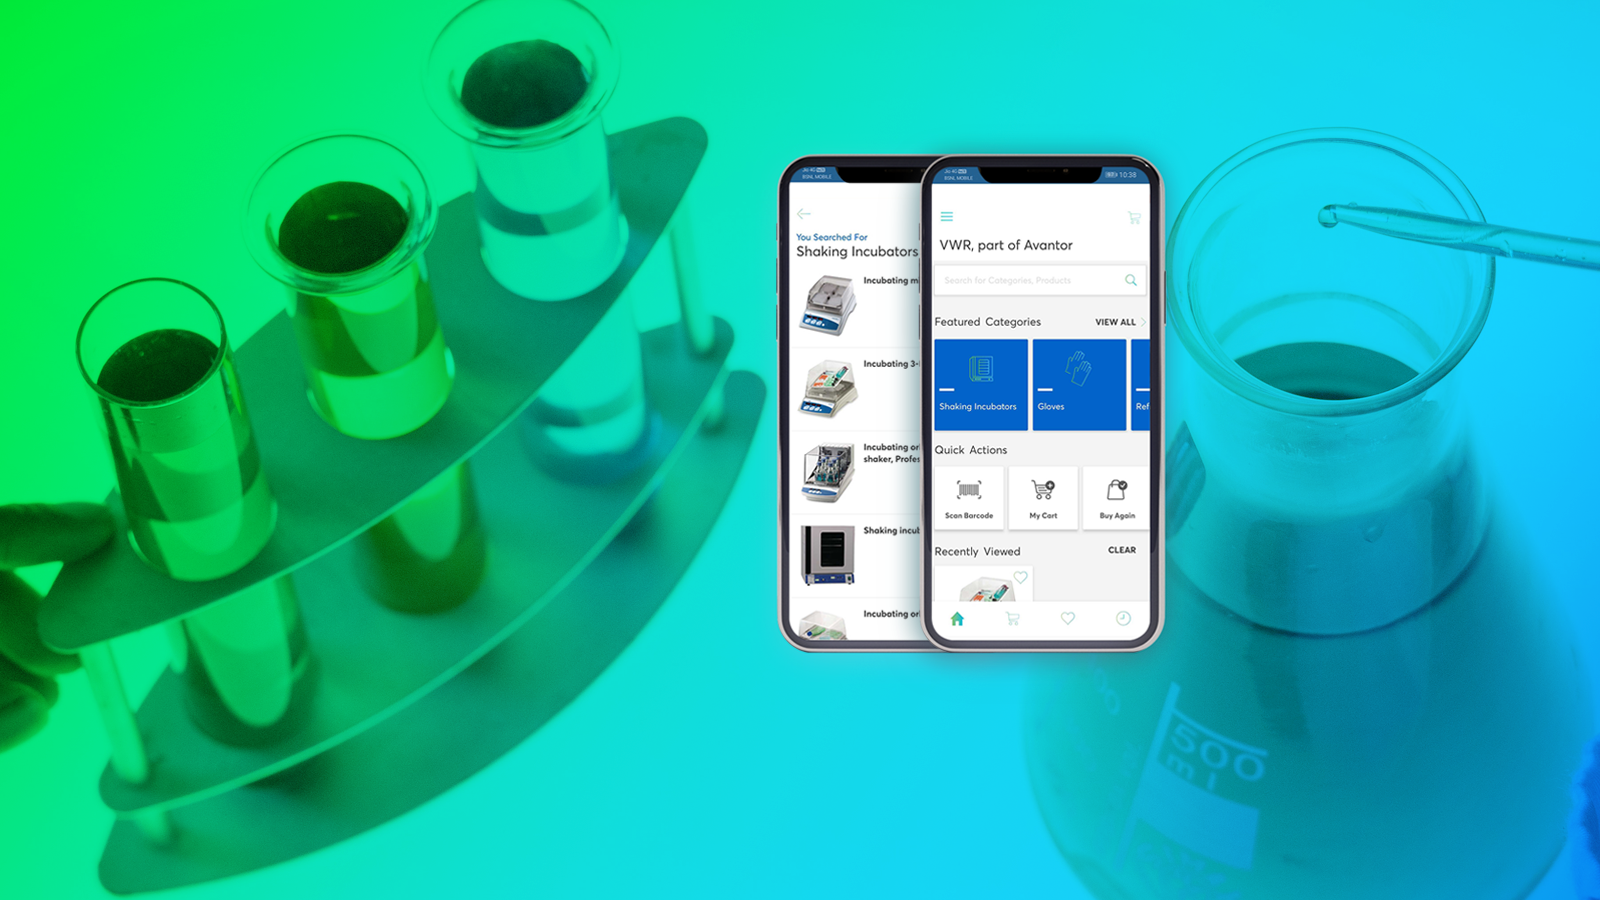 Laboratory products and mobile screens with images of VWR app